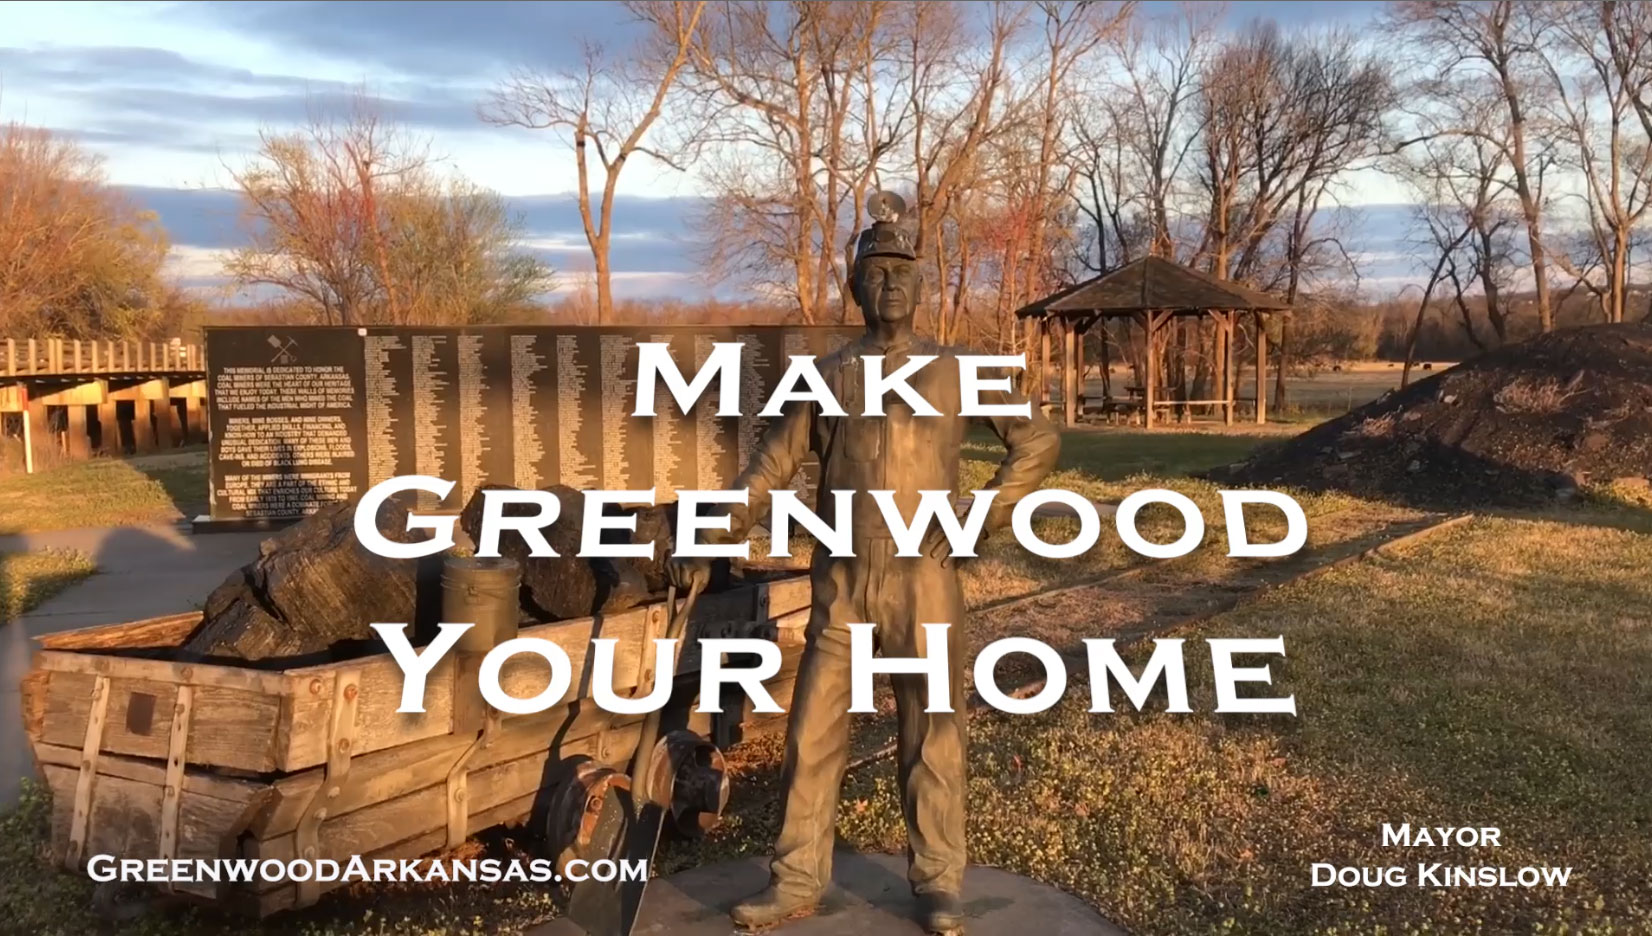 Make Greenwood Your Home